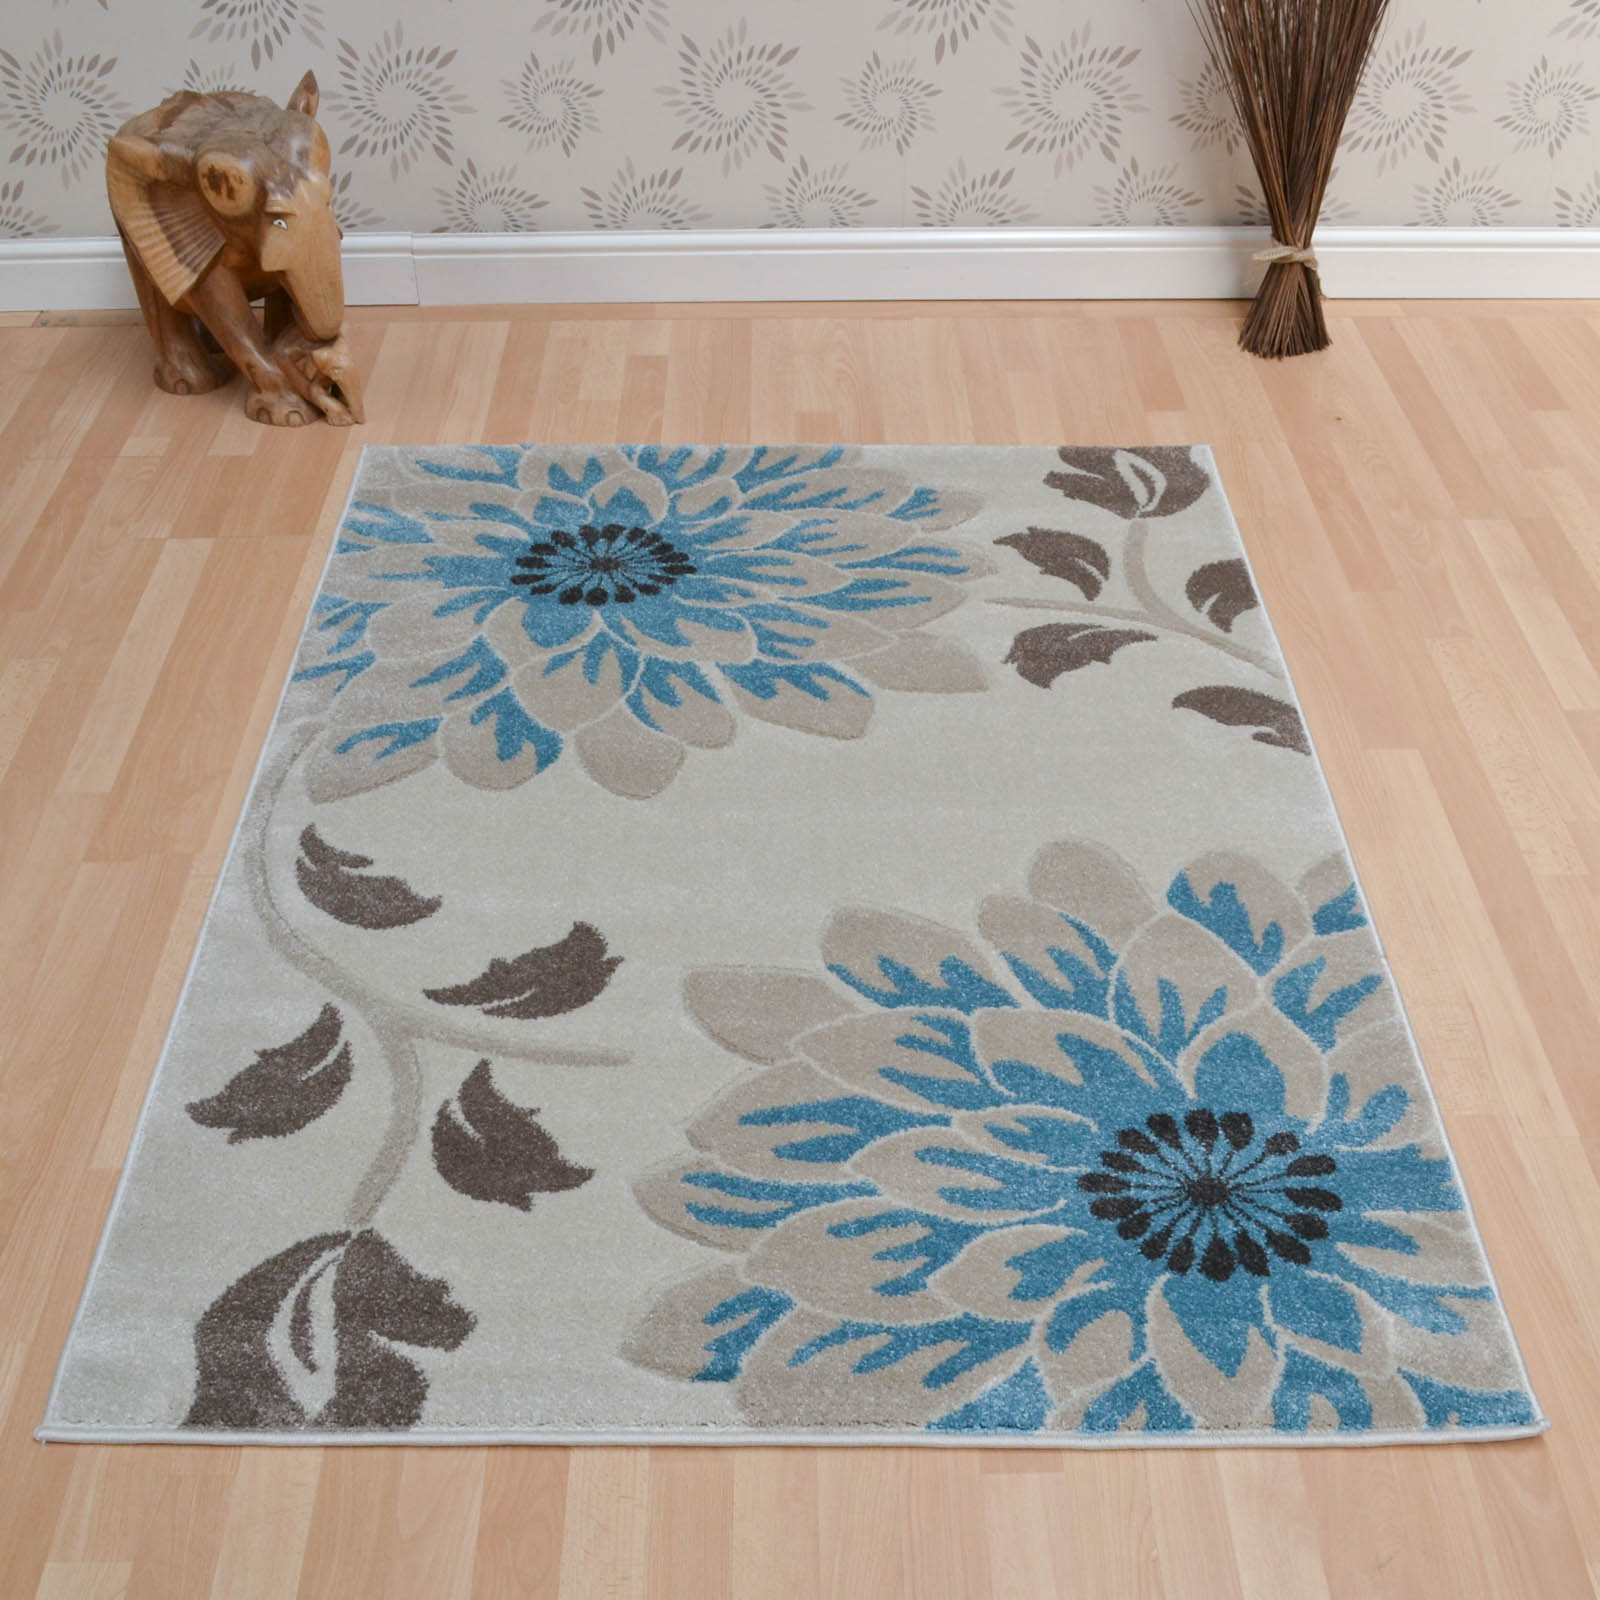 Vogue Floral Rugs VG35 in Beige and Blue